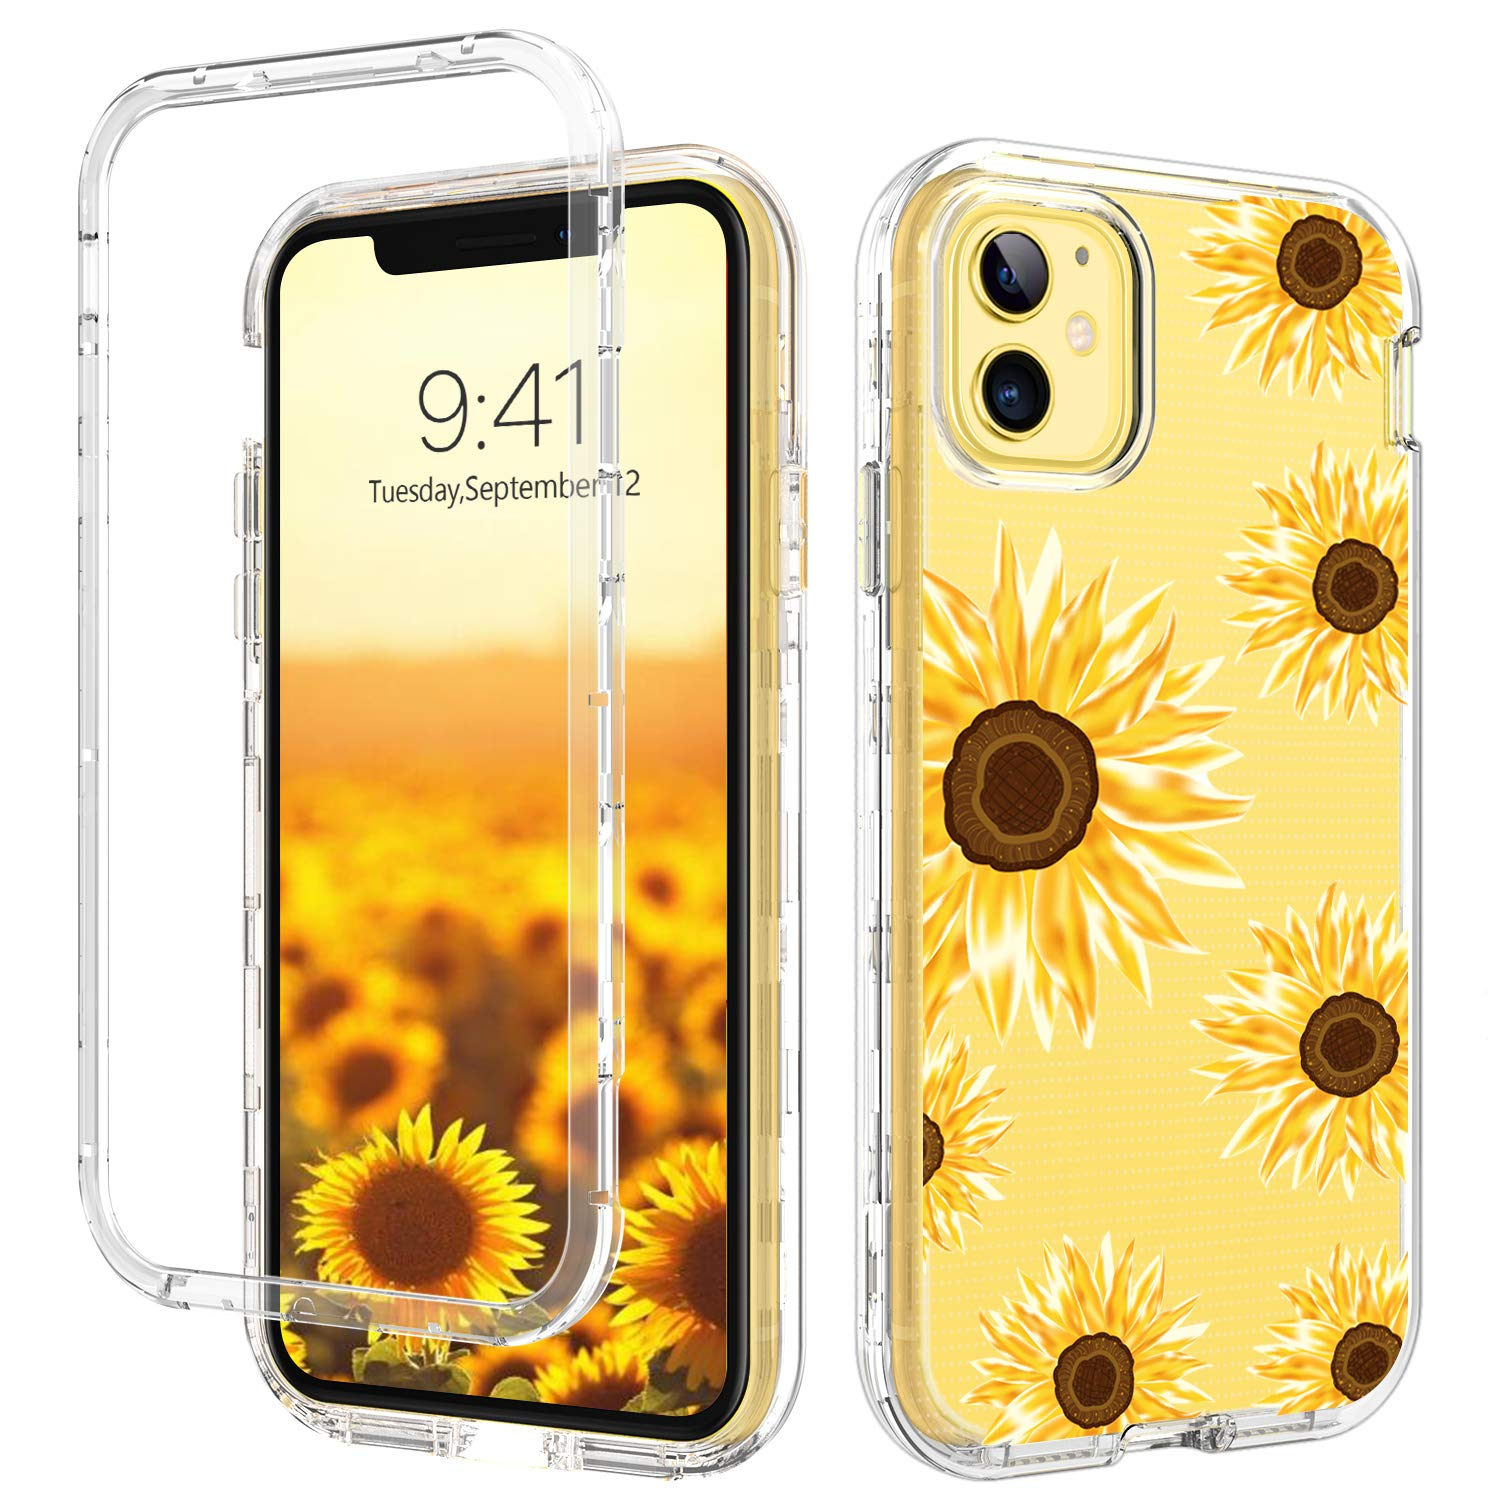 GUAGUA iPhone 11 Case Sunflower Clear Flowers Floral 3 in 1 Hybrid Hard Plastic Soft TPU Bumper Cover Shockproof Protective Phone Cases for iPhone 11 6.1-inch 2019 Transparent Yellow